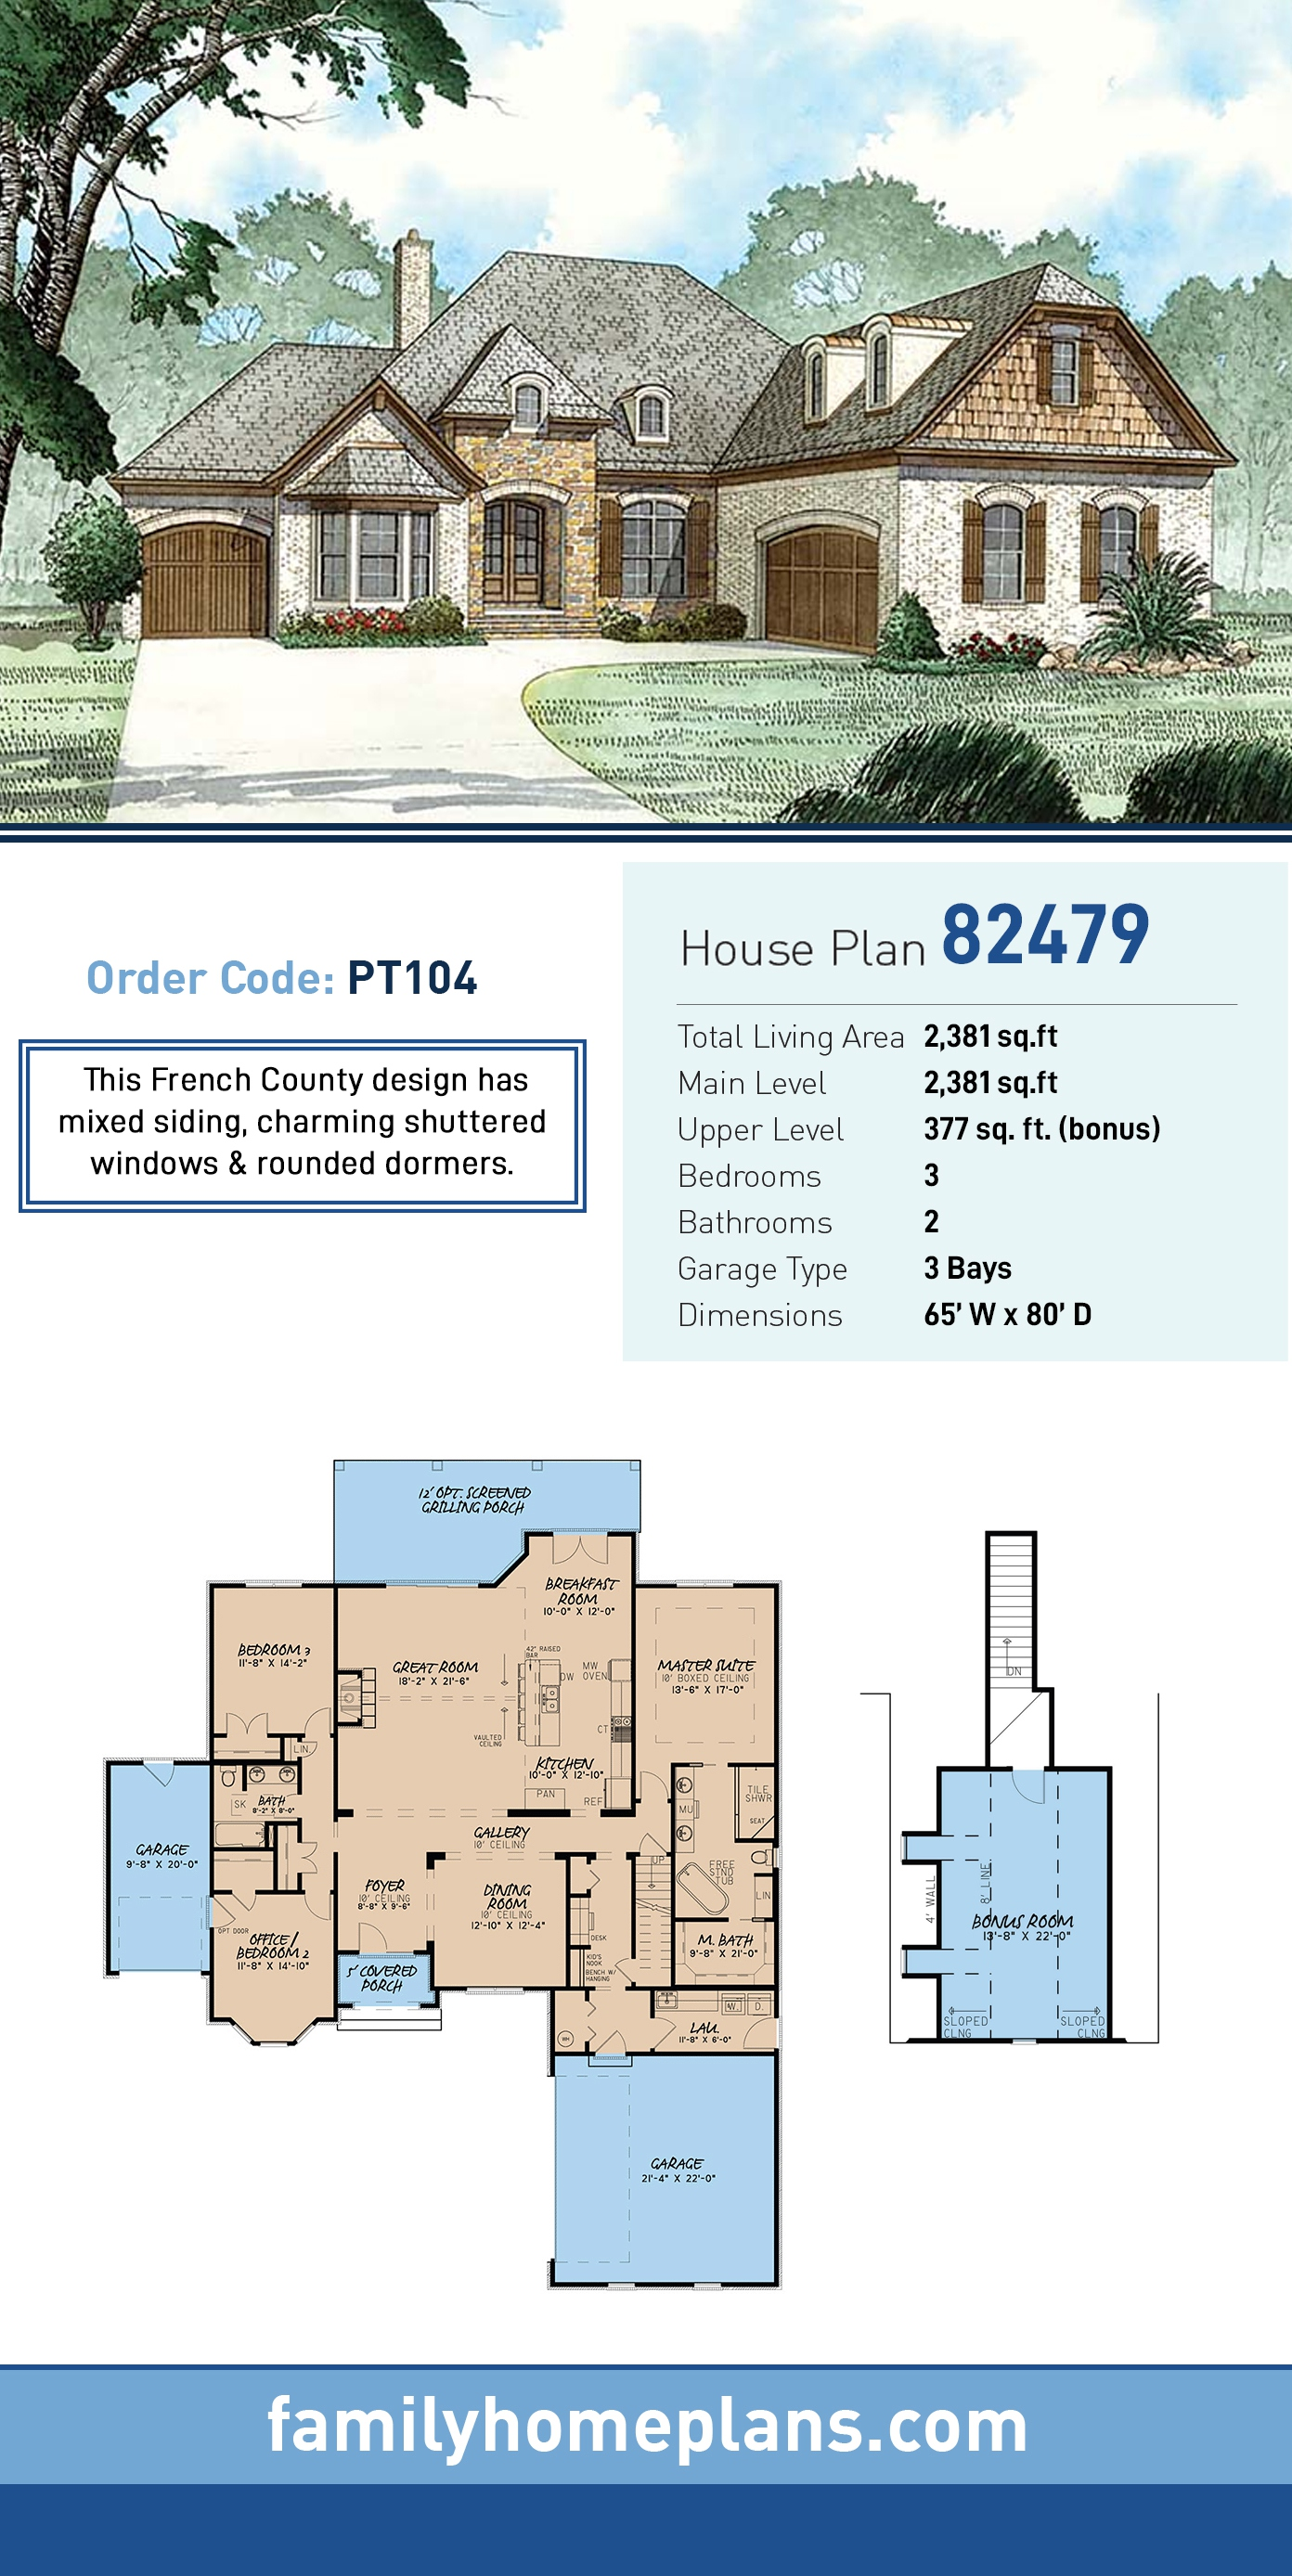 European, French Country House Plan 82479 with 3 Beds, 2 Baths, 3 Car Garage